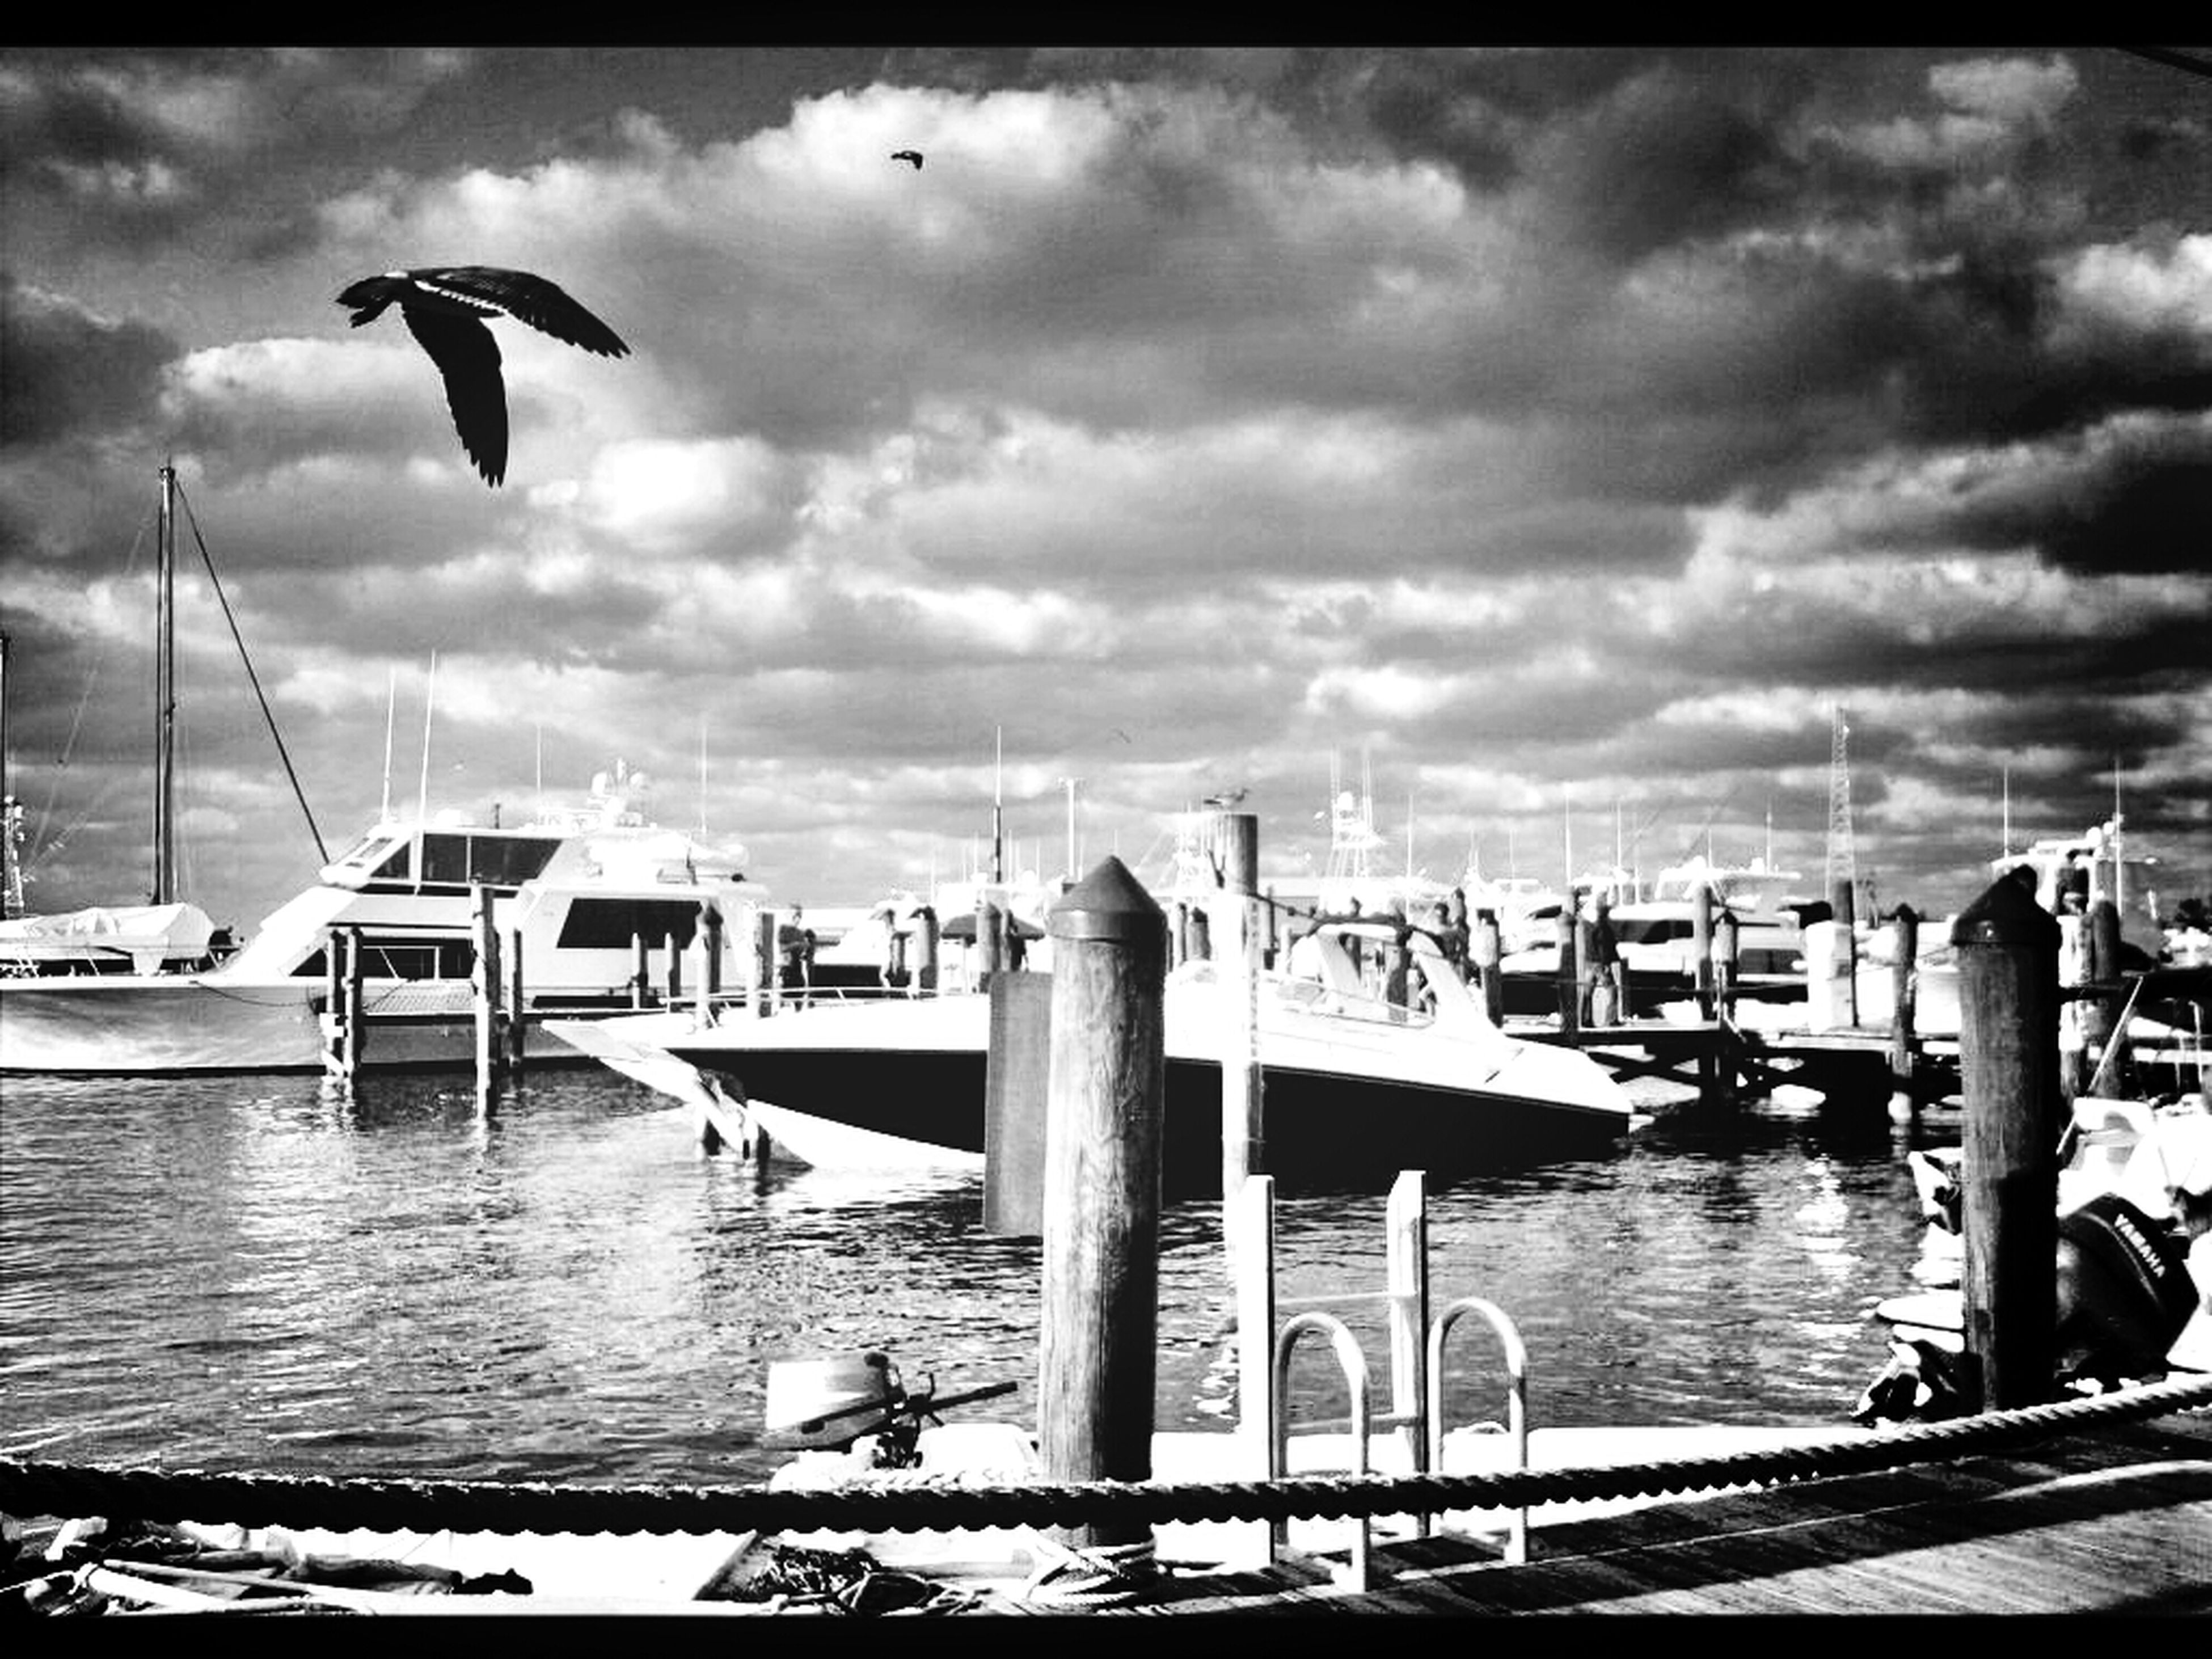 nautical vessel, water, sky, transportation, mode of transport, bird, cloud - sky, boat, moored, sea, cloudy, flying, animal themes, wildlife, harbor, pier, animals in the wild, cloud, seagull, built structure